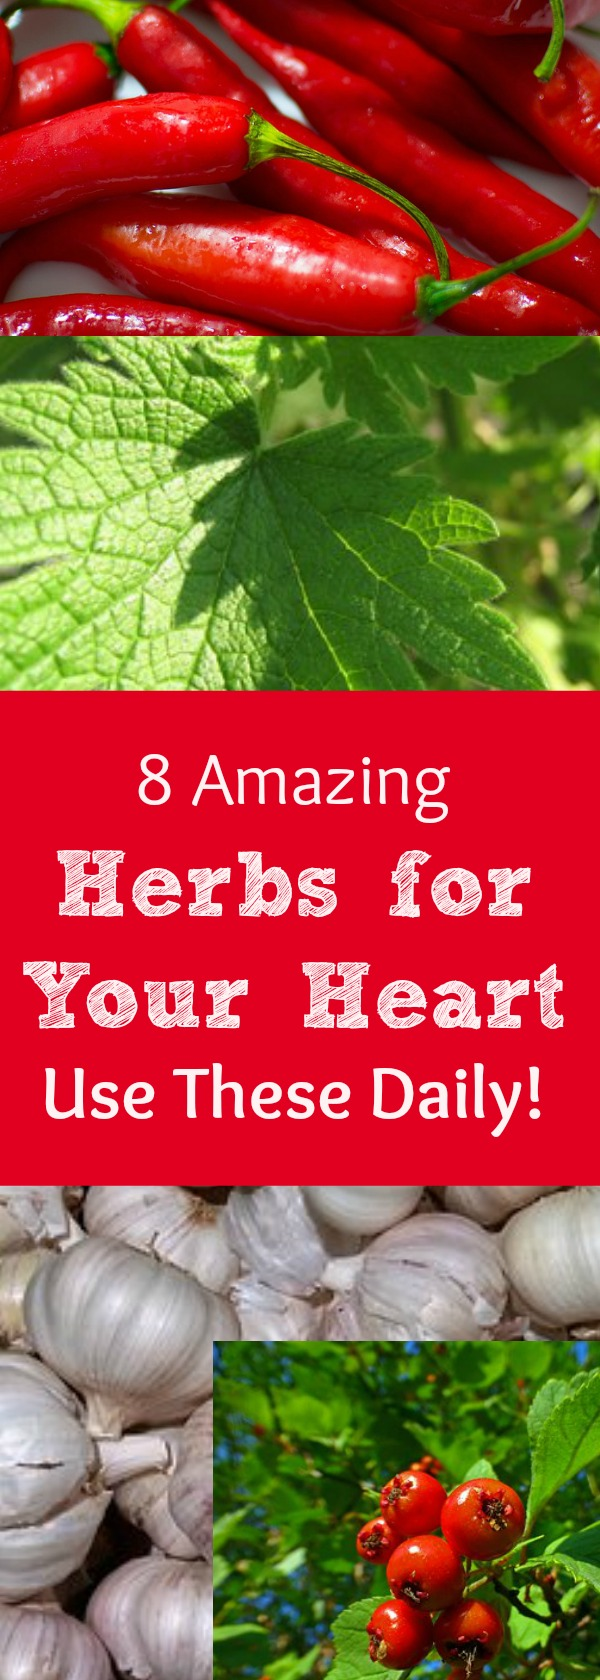 Do you or a loved one experience heart health problems? Heart health issues are a leading cause of doctors visits and hospitalizations. There are herbs you can use daily, along with making some common sense lifestyle changes that can support the health of your circulatory system and heart. Here is a list of herbs to consider using often! #healingharvesthomestead #heart #health #herbs #herbsforyourheart #for #healthyheart #herbalism #plantmedicine